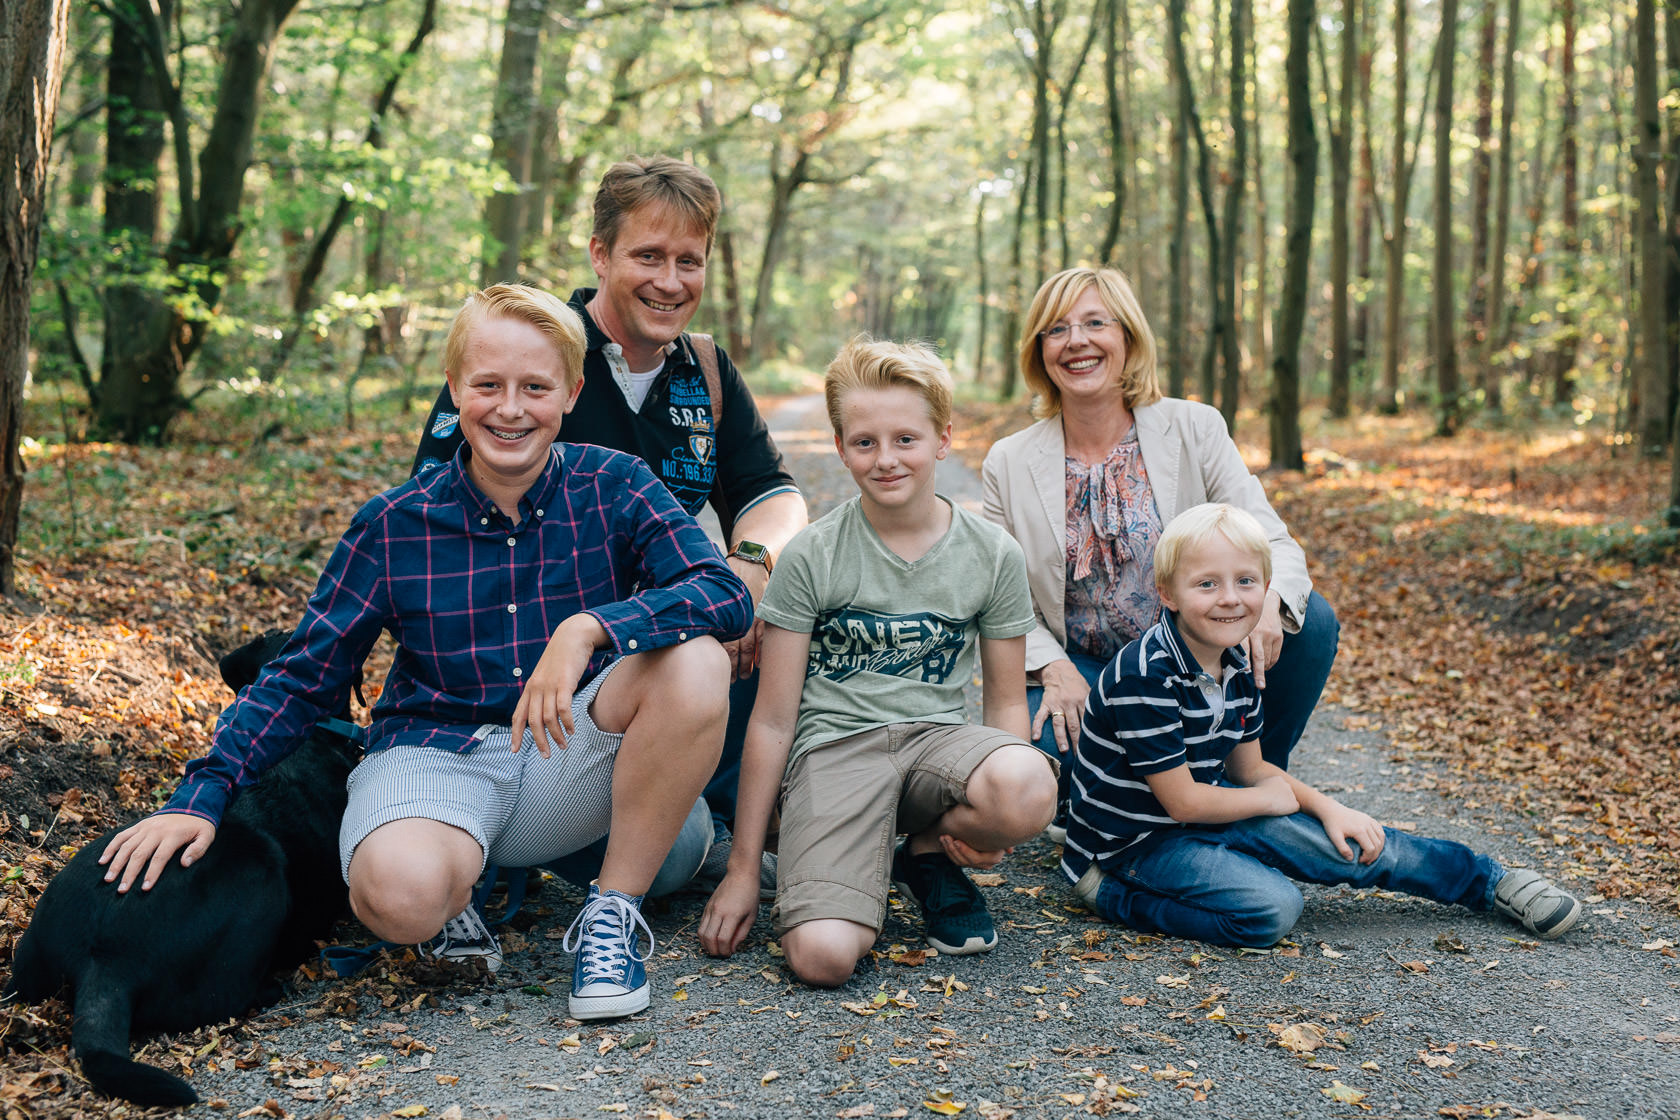 Familienfotos im Herbst in Waghäusel Familie Anders Familie mit Hund Familienfoto mit Hund